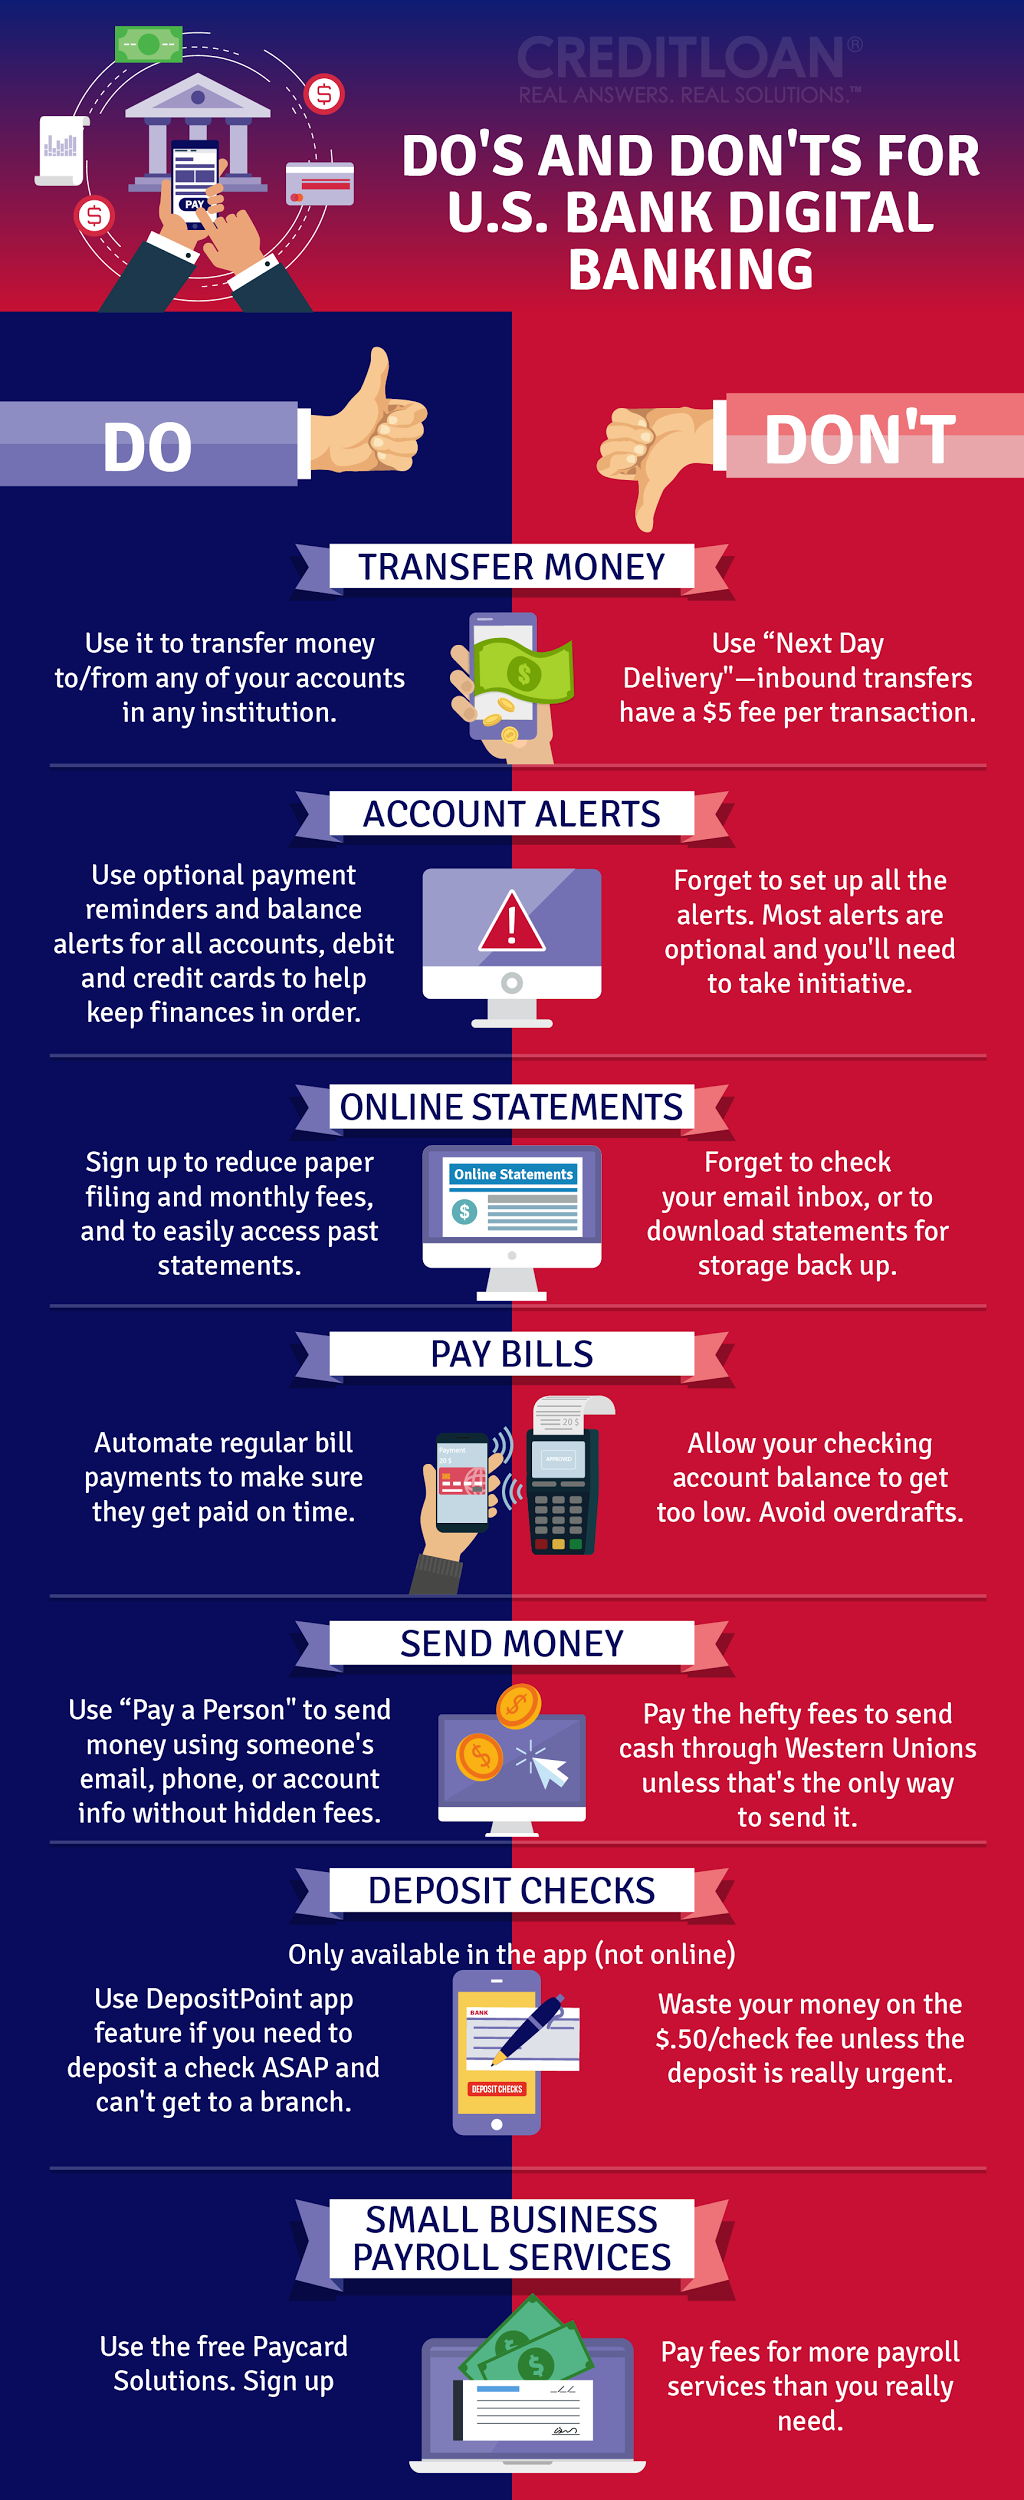 Do's and don'ts for U.S. Bank digital banking